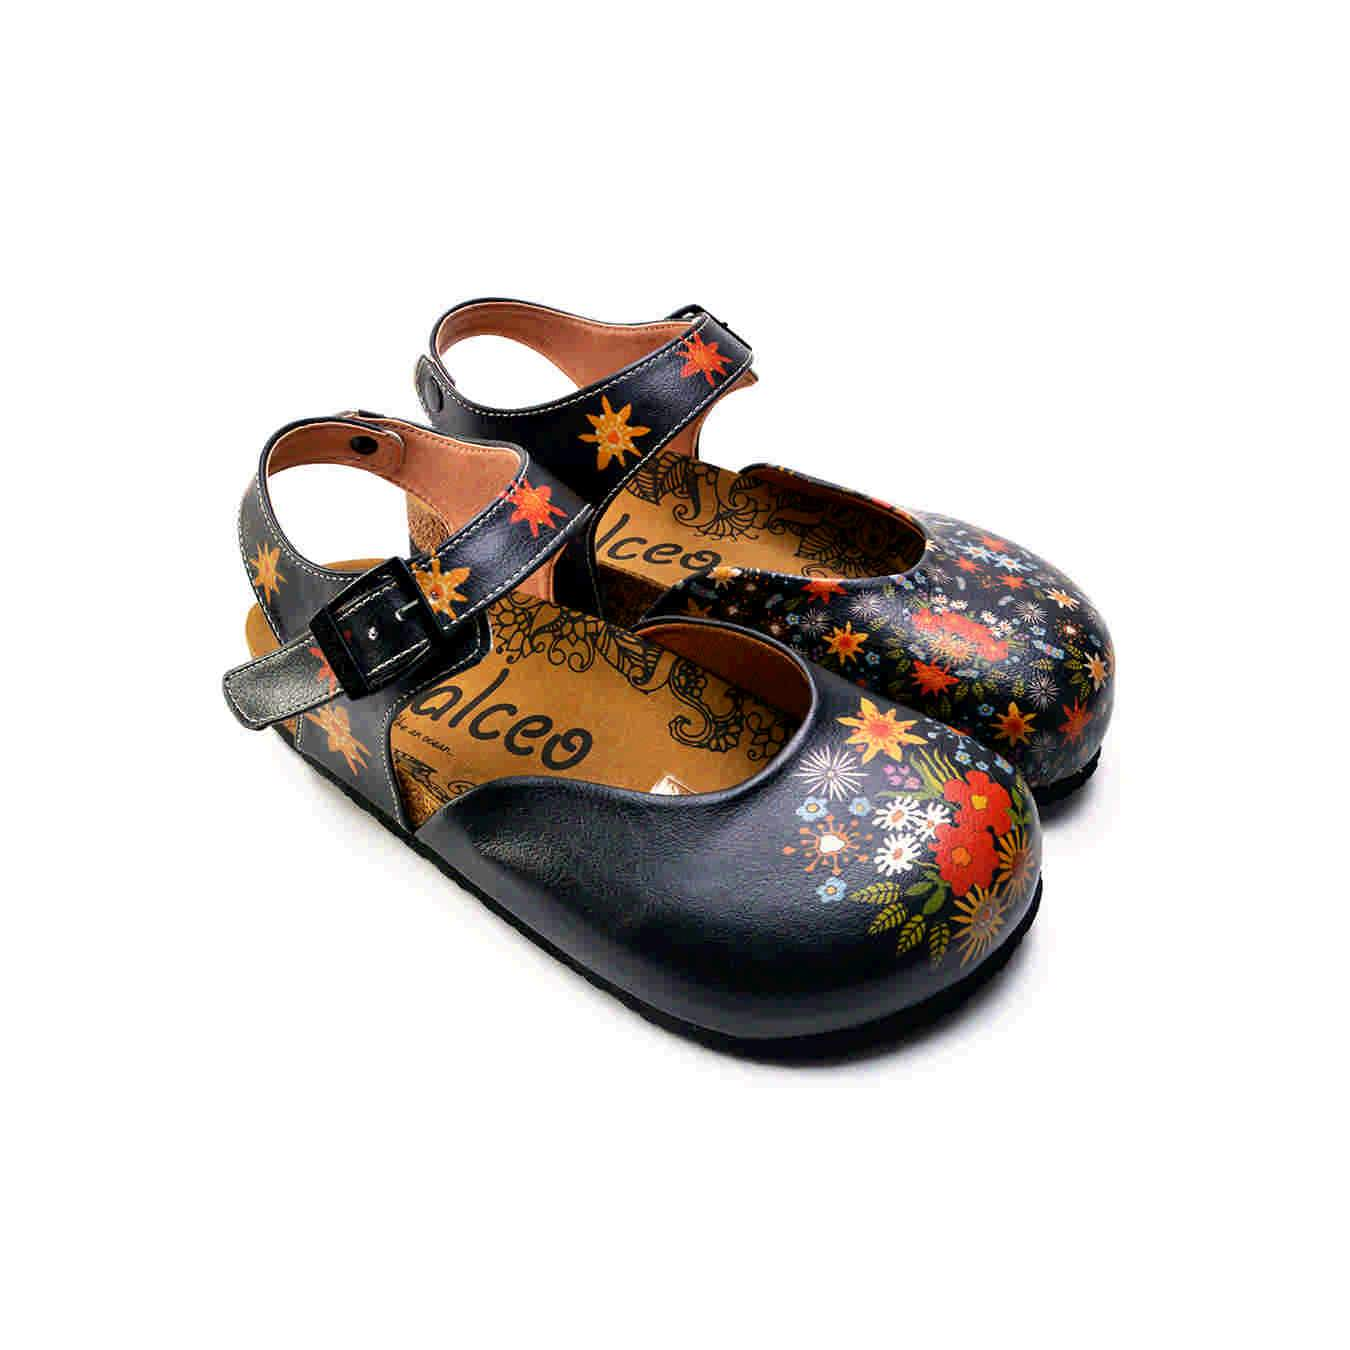 Clogs CAL1610, Goby, CALCEO Clogs